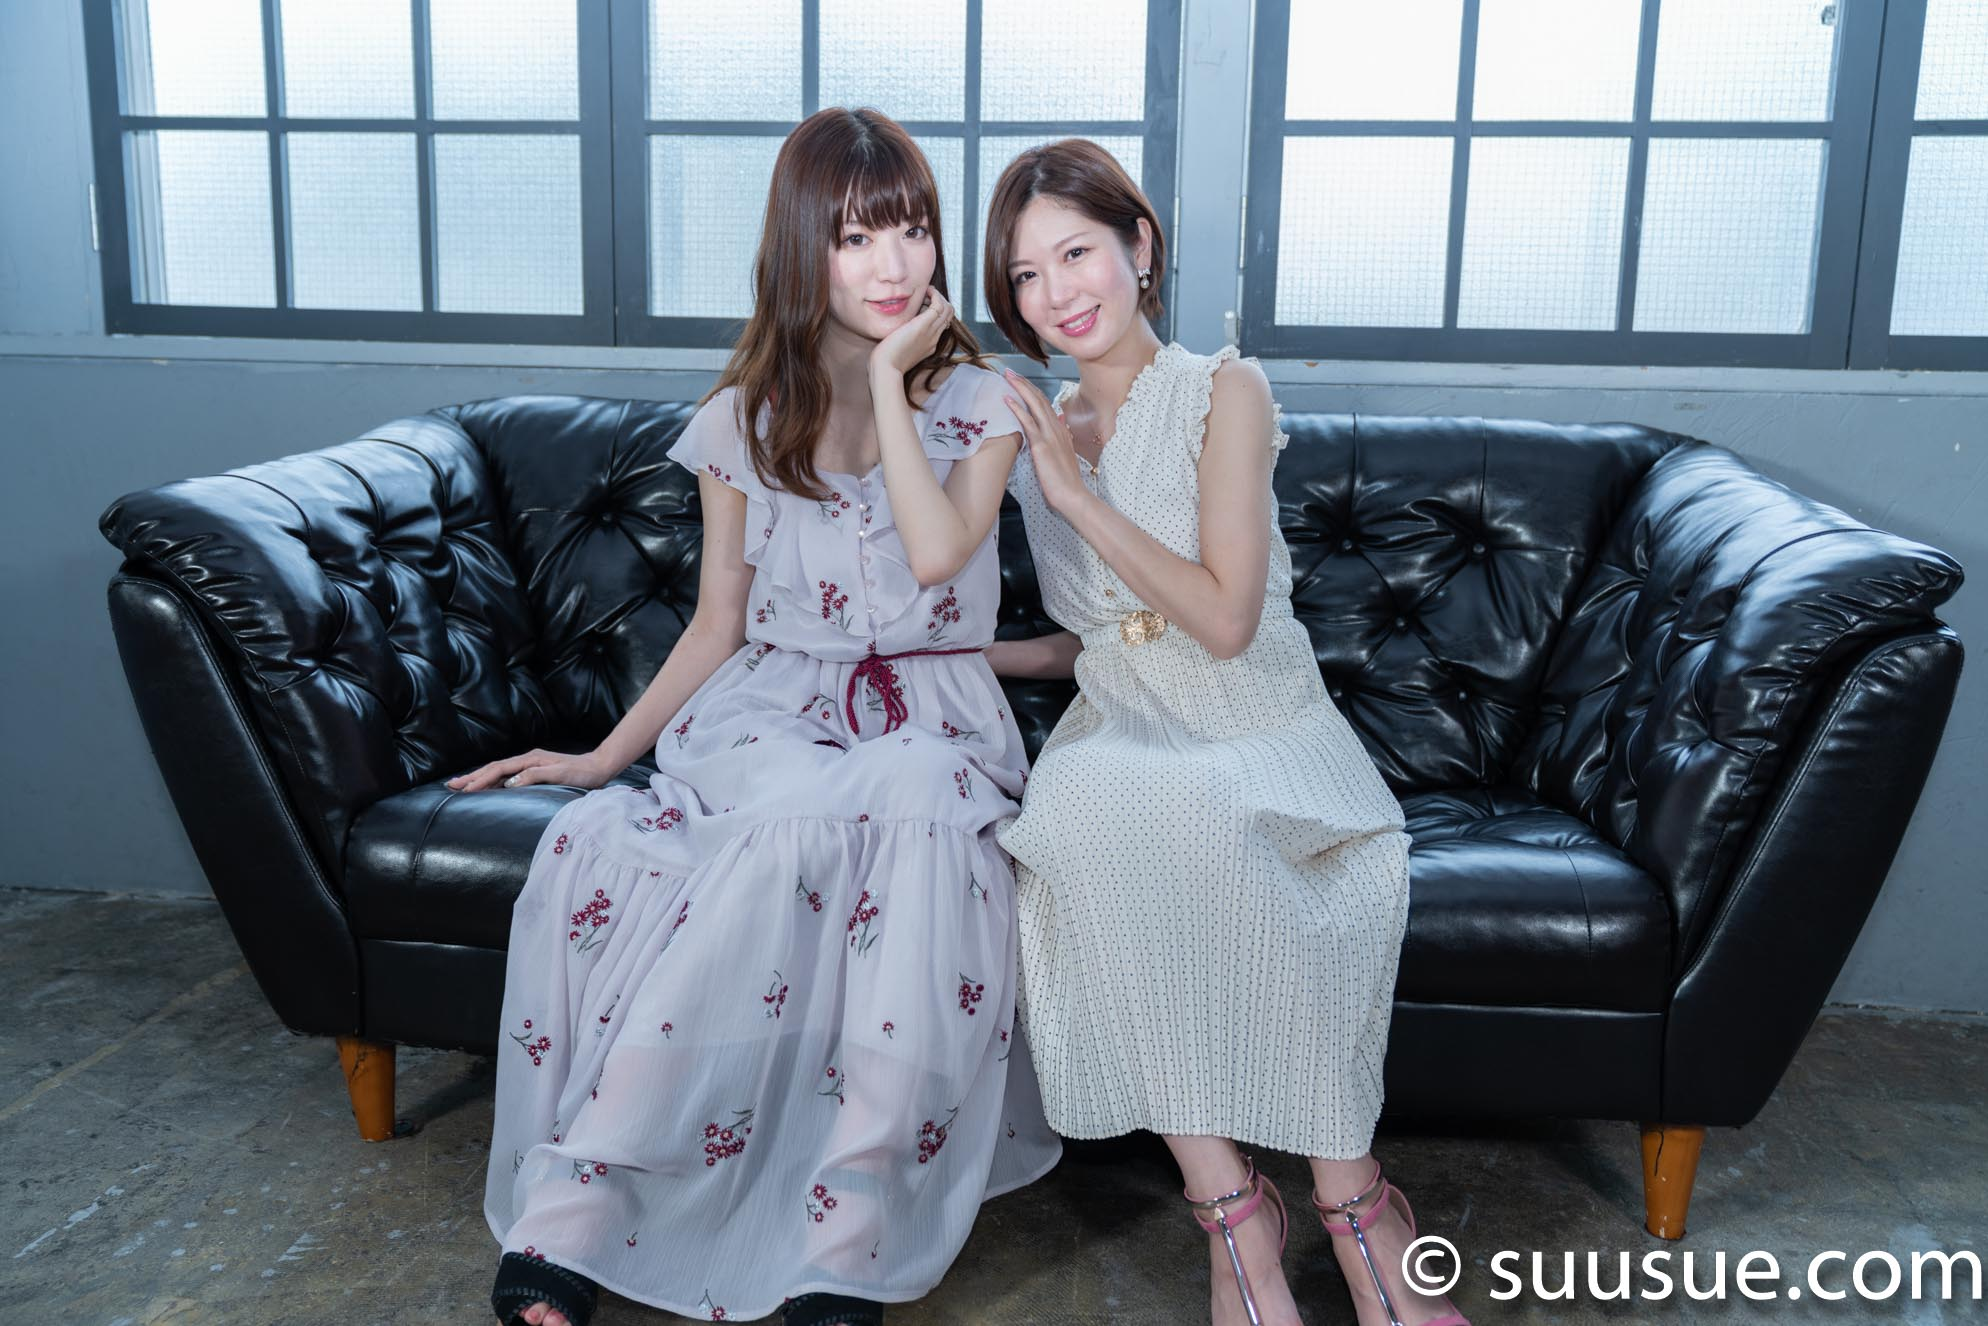 2018/07/28 NewType撮影会(小嶋みやび・蒼井桃香姉妹撮影会)